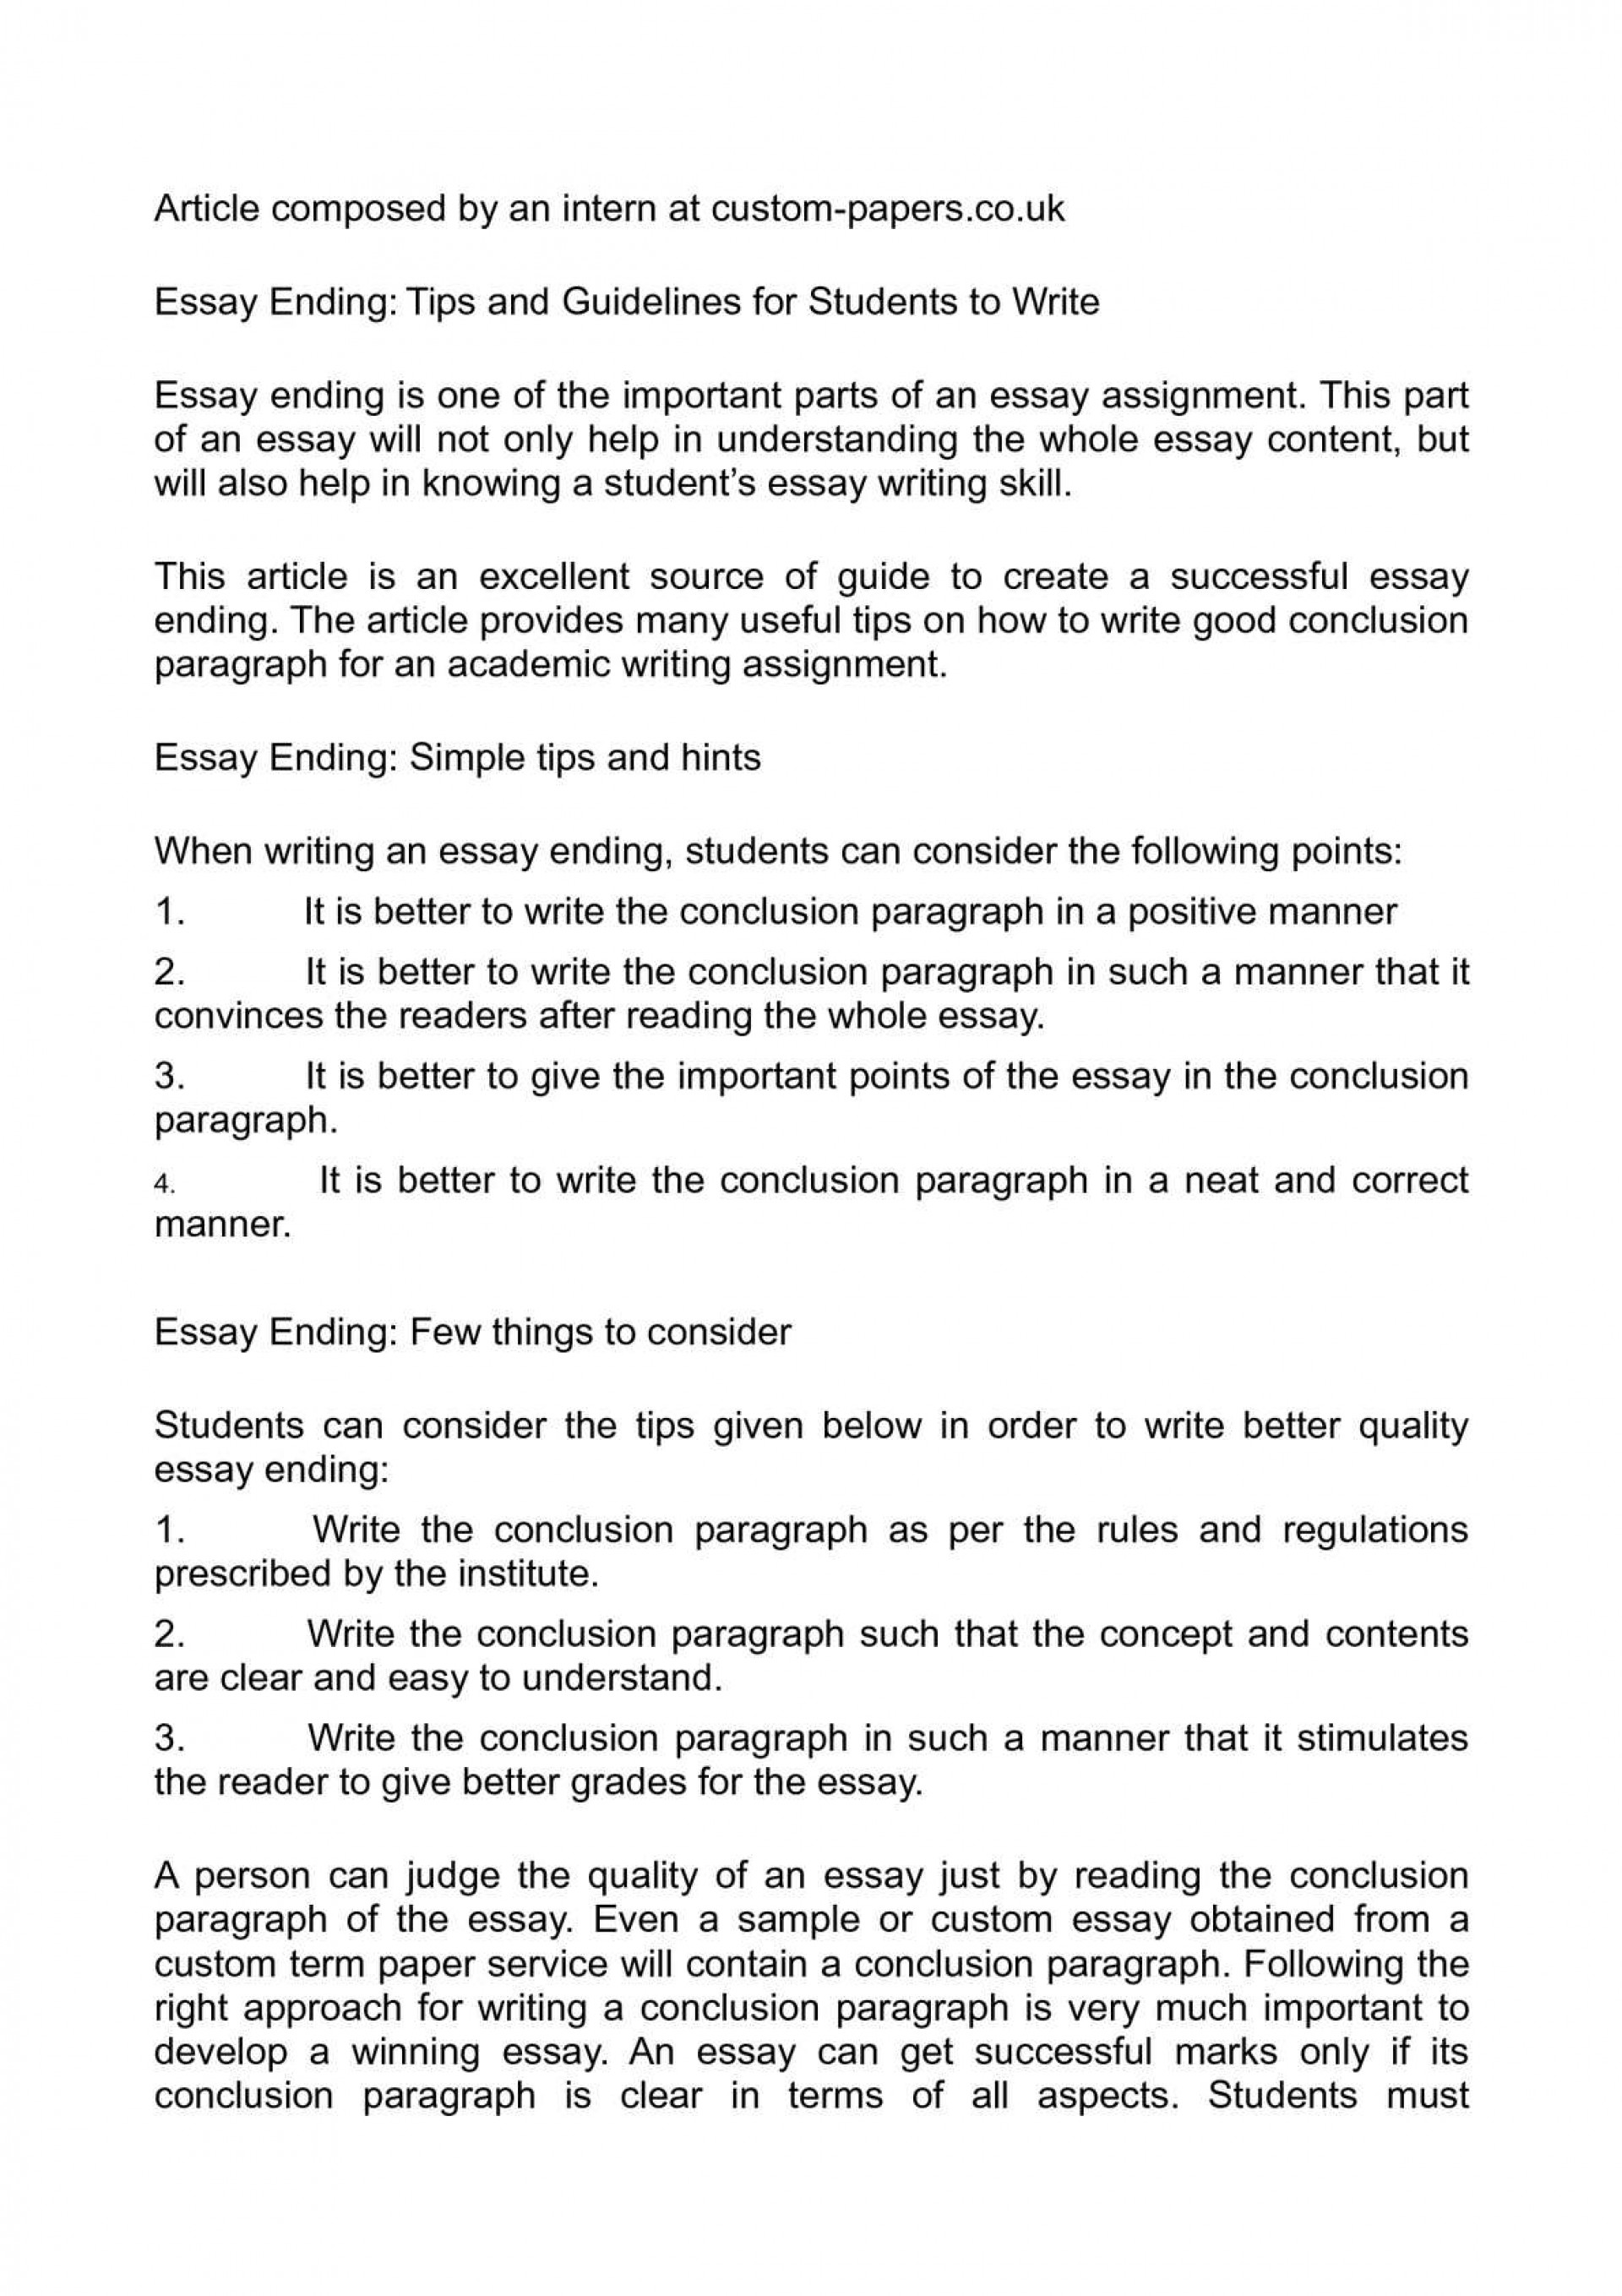 001 Parts Of An Essay Ending Tips And Guidelines For Students To Write Writing Persuasi Pdf Three Persuasive Stupendous Argumentative The Ppt Powerpoint Presentation 1920